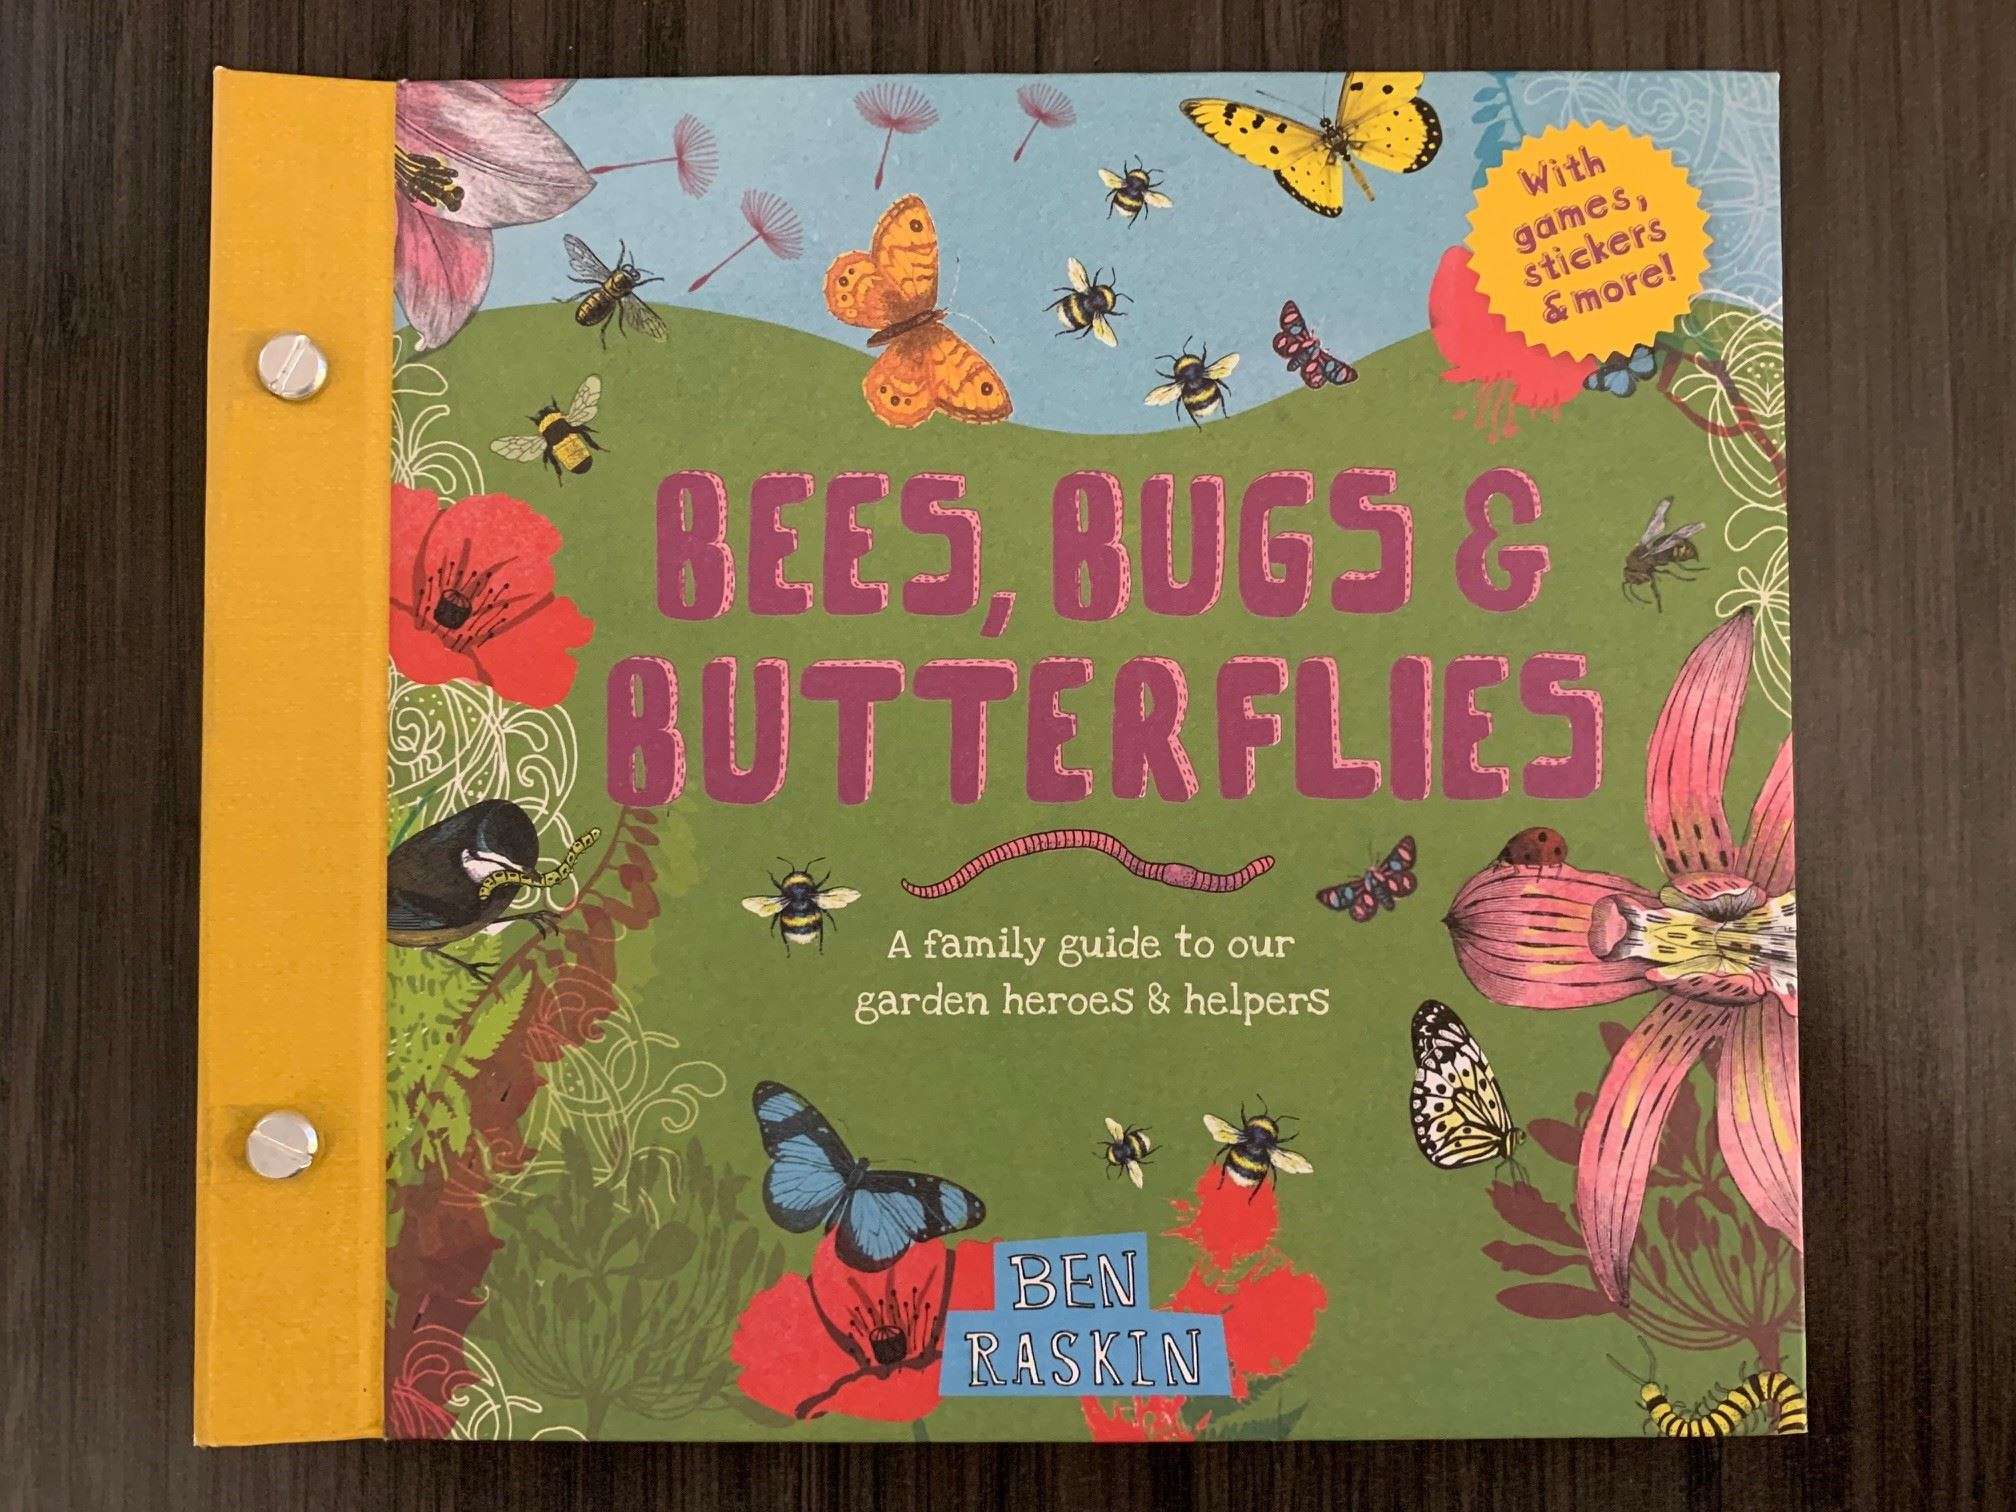 Book 2 - Bees Bugs and Butterflies